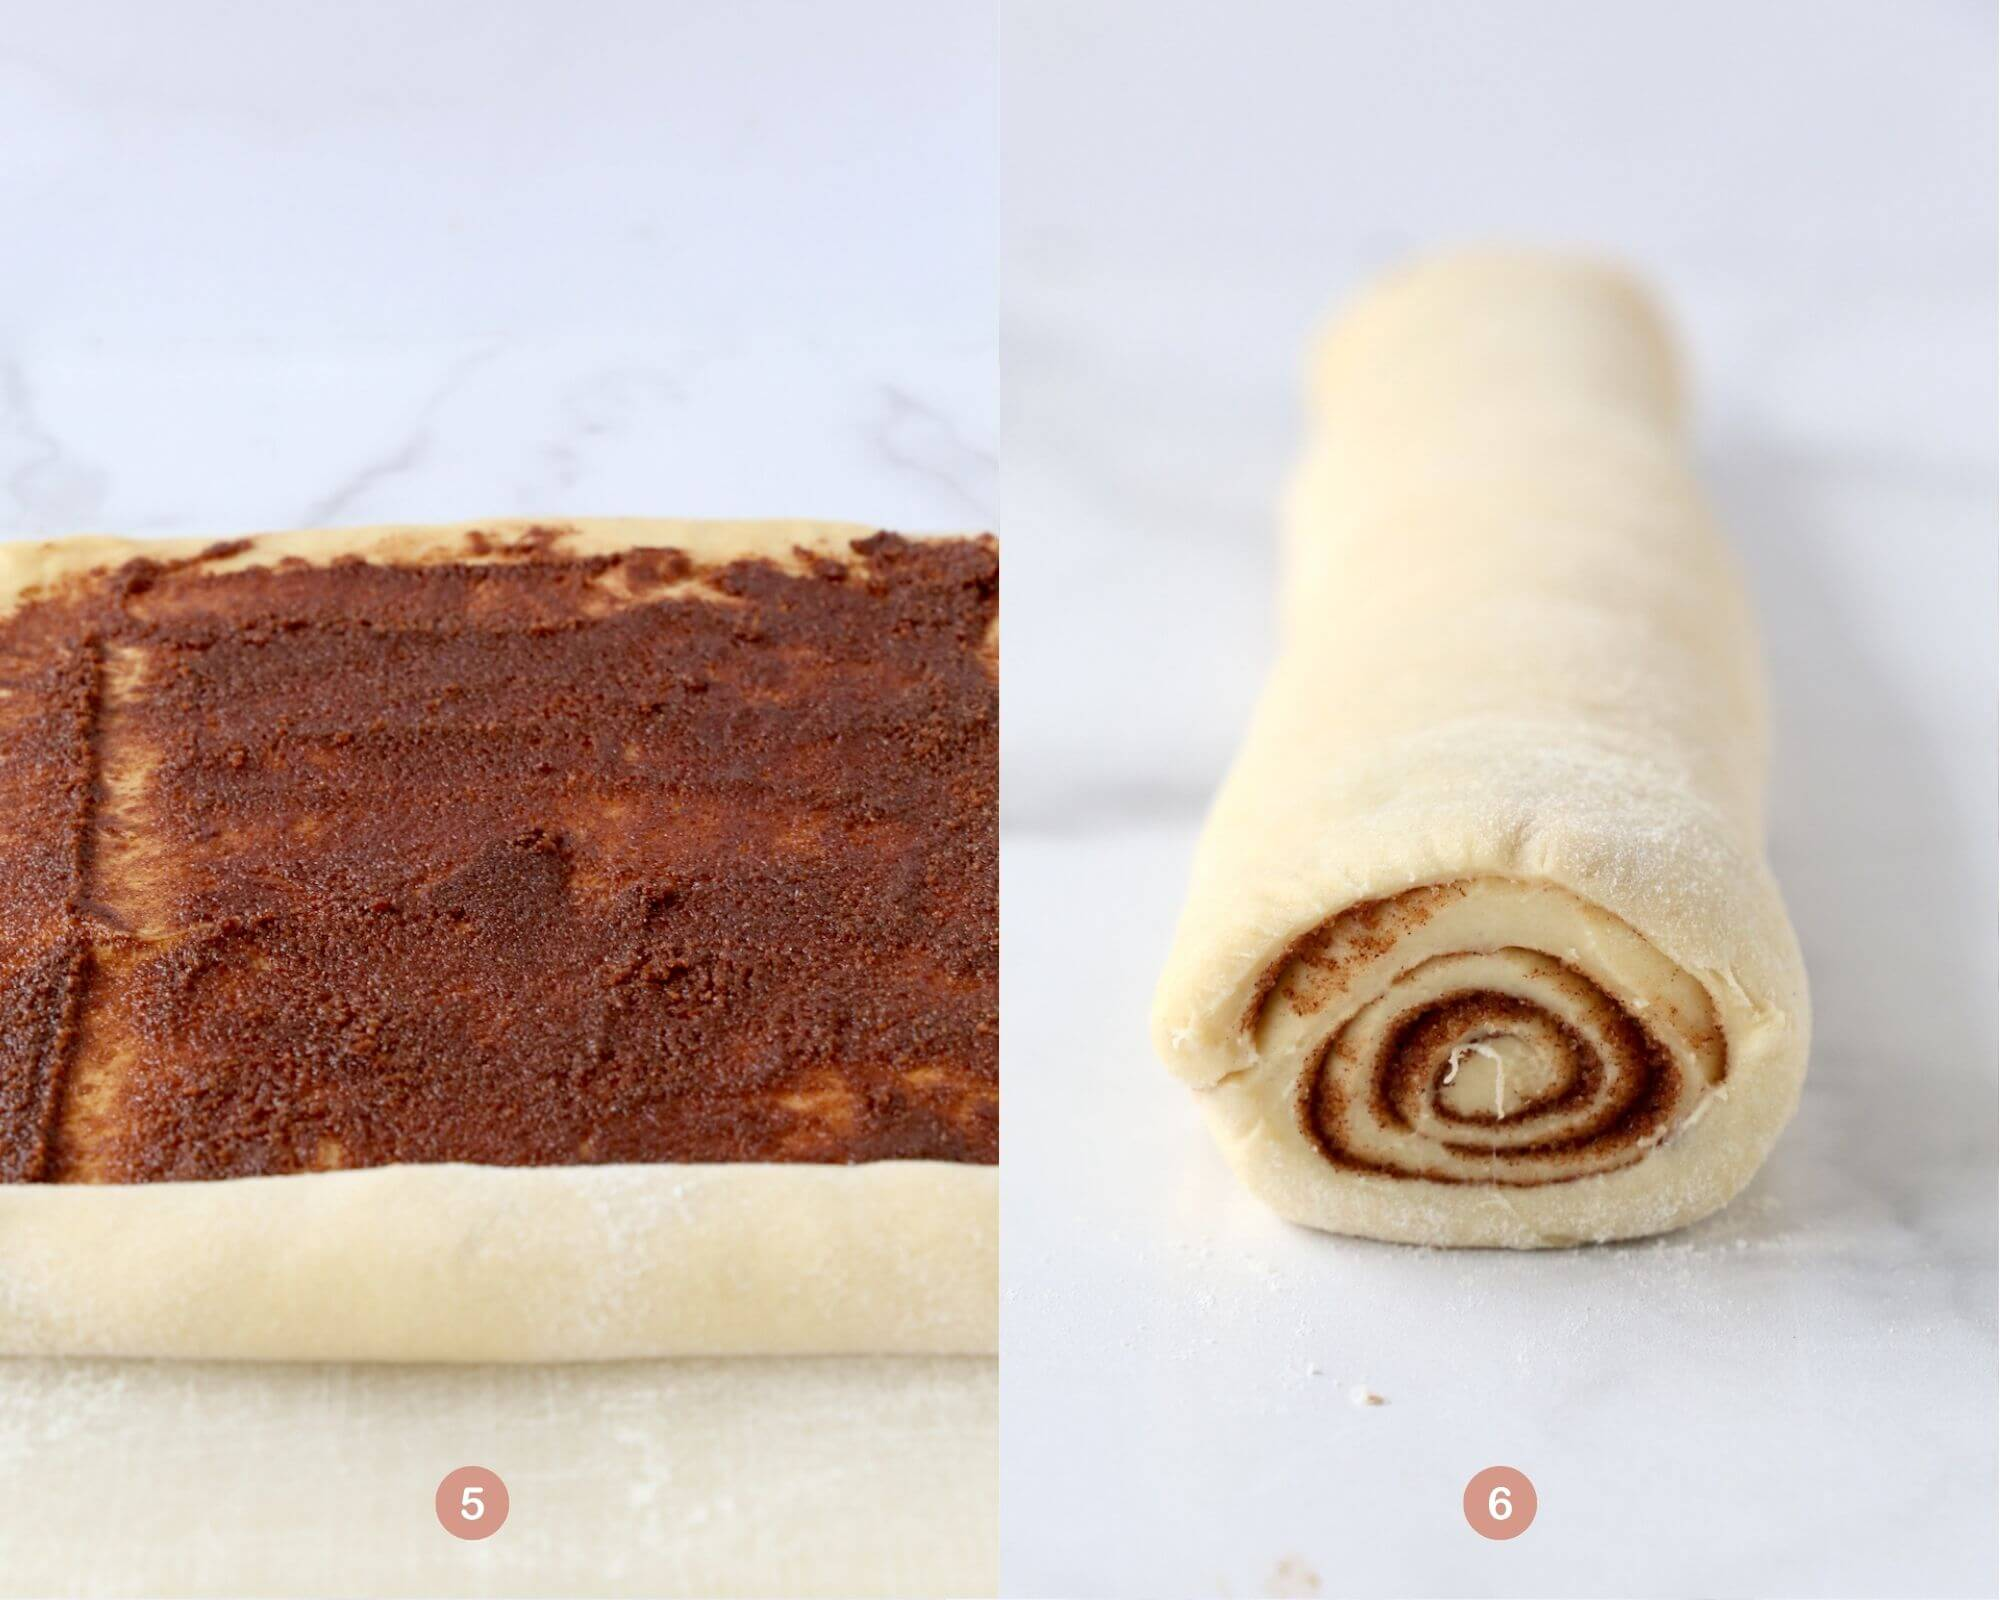 the cinnamon sugar filling spread on the dough and the dough rolled up into a log